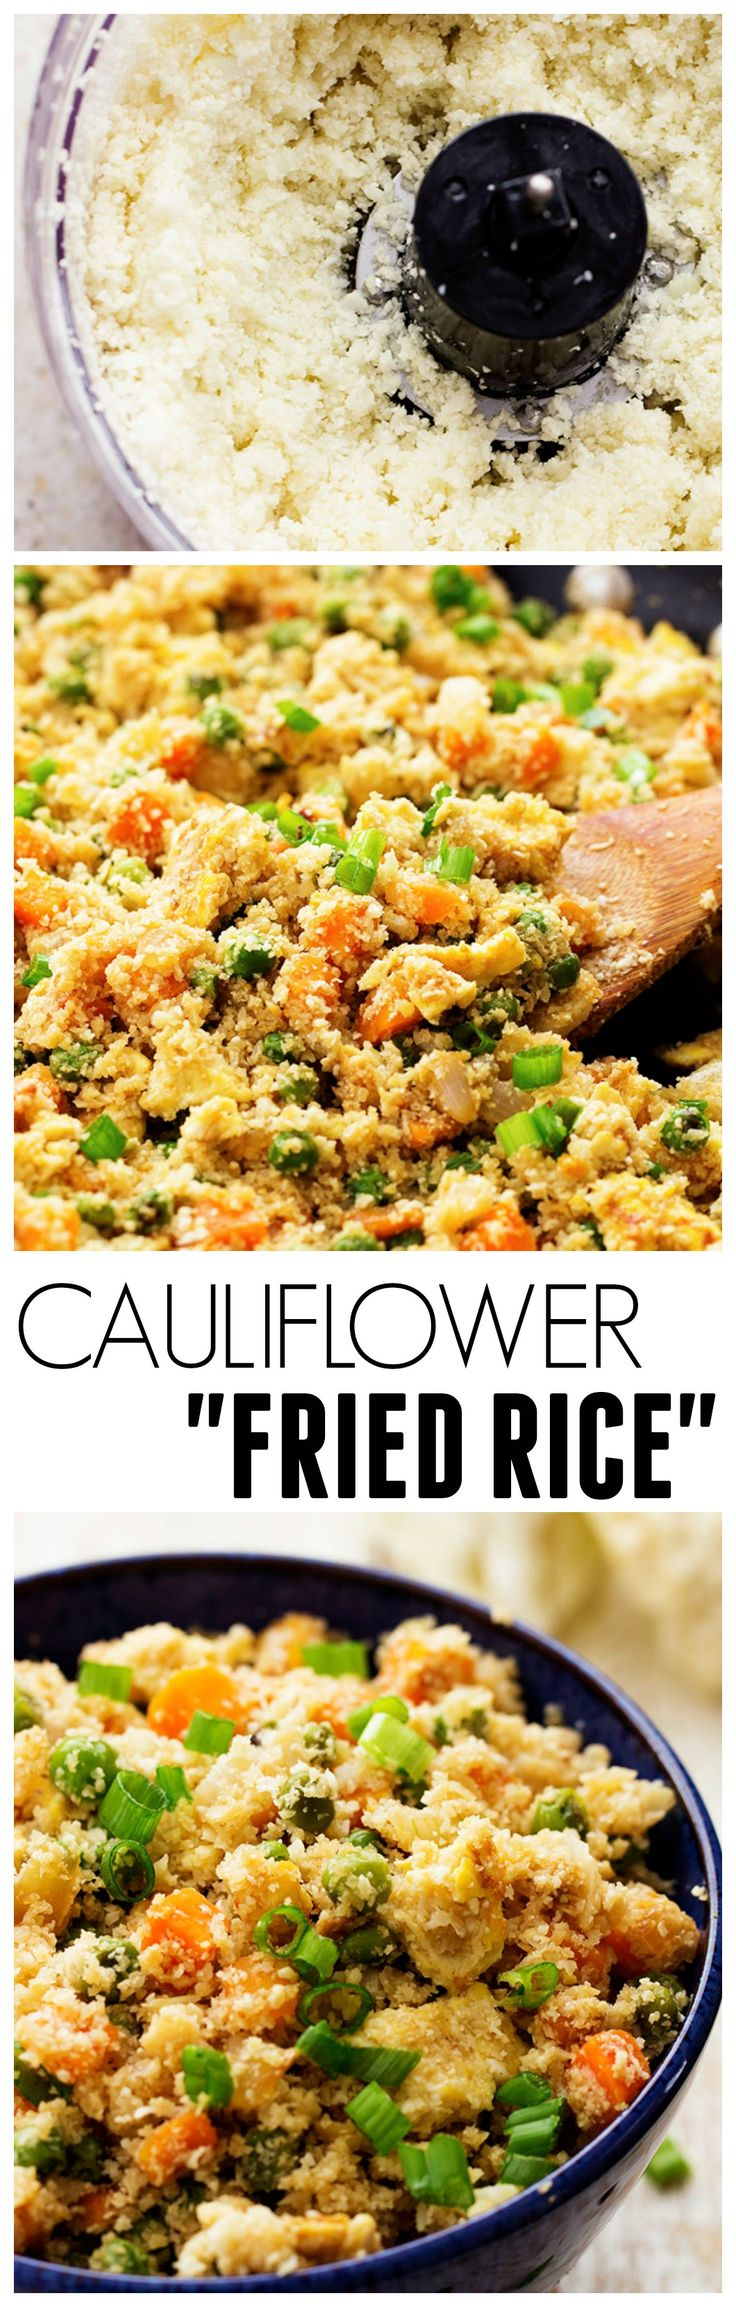 This Cauliflower Fried Rice looks and tastes exactly like fried rice! But SO much healthier for you! On MRC menus sub carrots for another vegetable like mushrooms or broccoli, leave off the white onion.